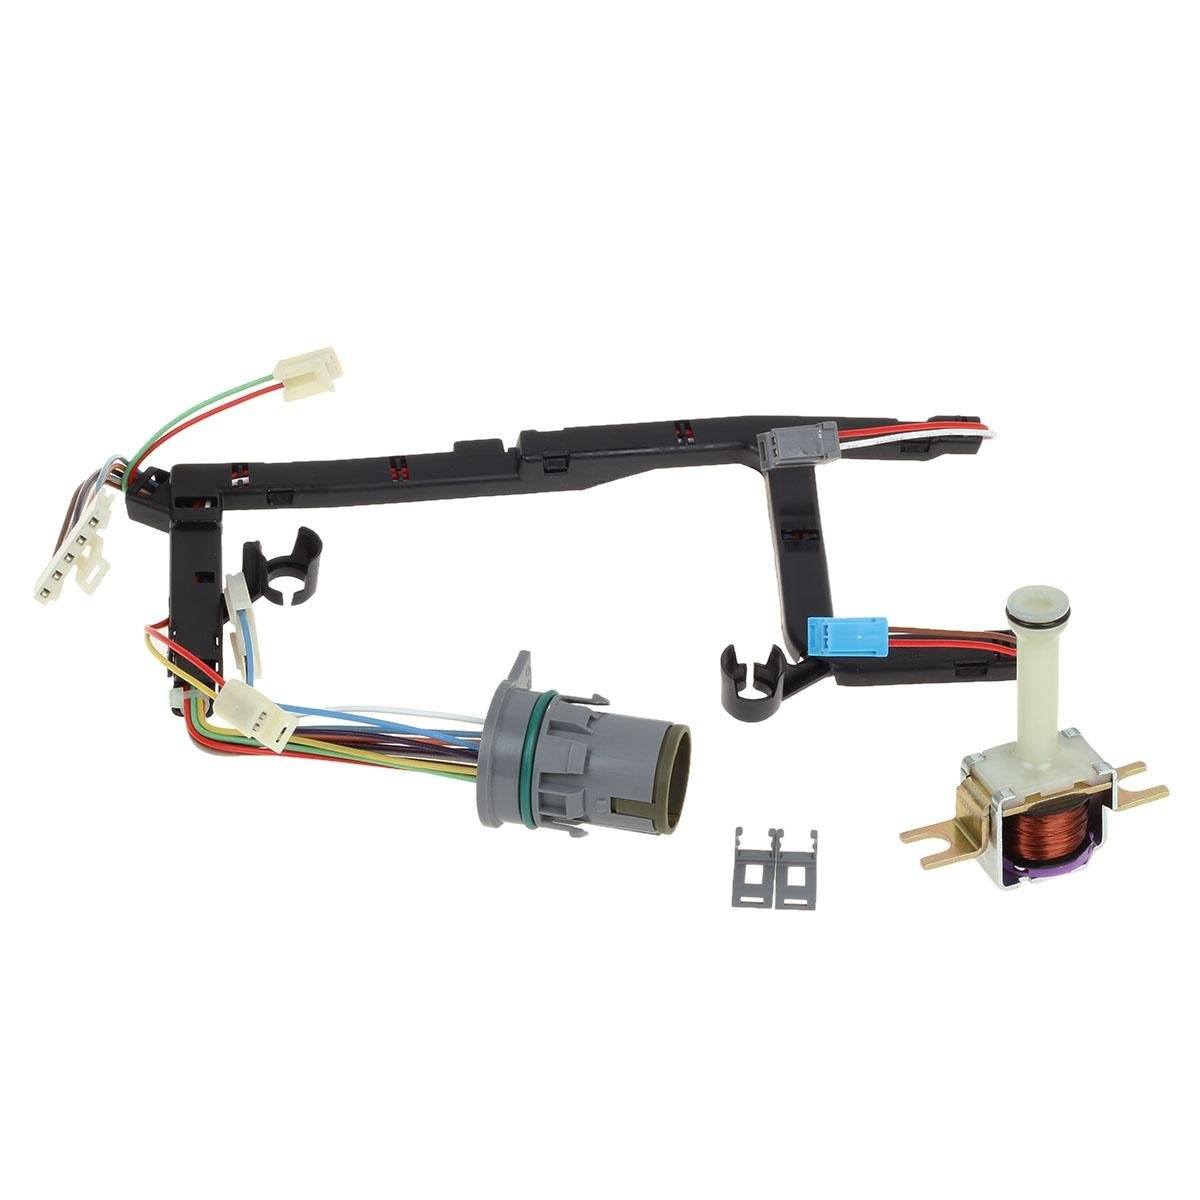 hight resolution of universal 4l60e transmission solenoid internal wire harness with tcc for 1993 2002 gm in wire from automobiles motorcycles on aliexpress com alibaba